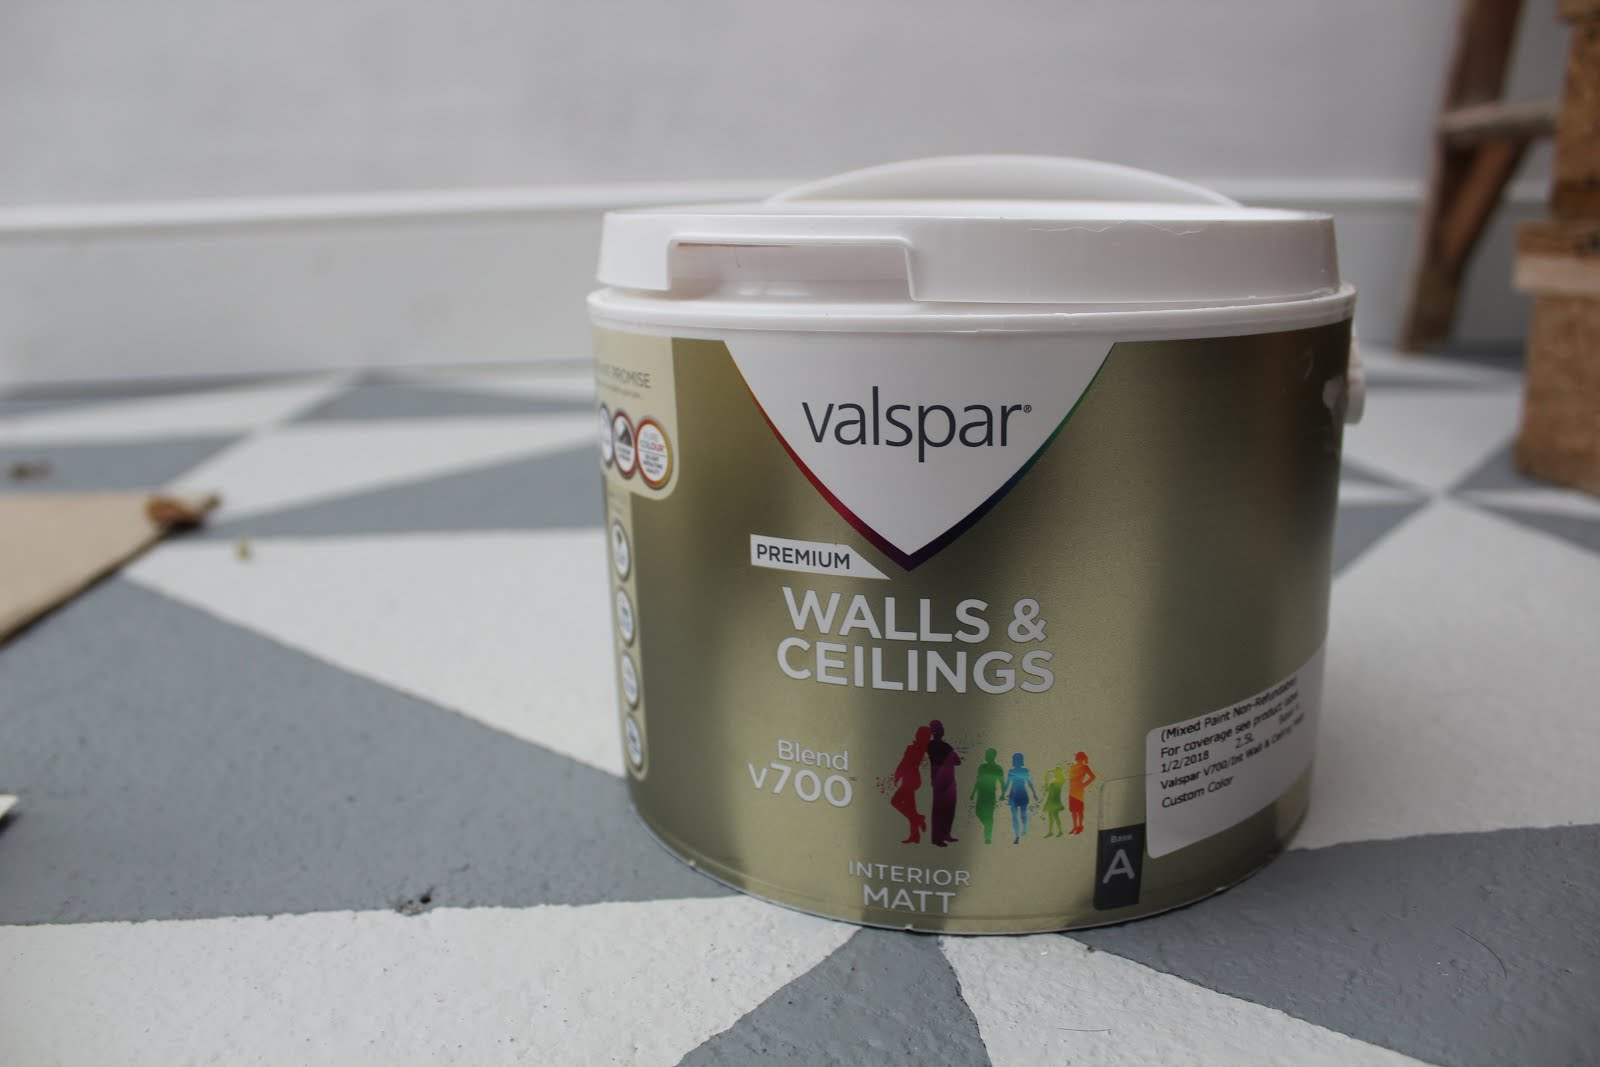 Valspar Colour Matching with Farrow and Ball